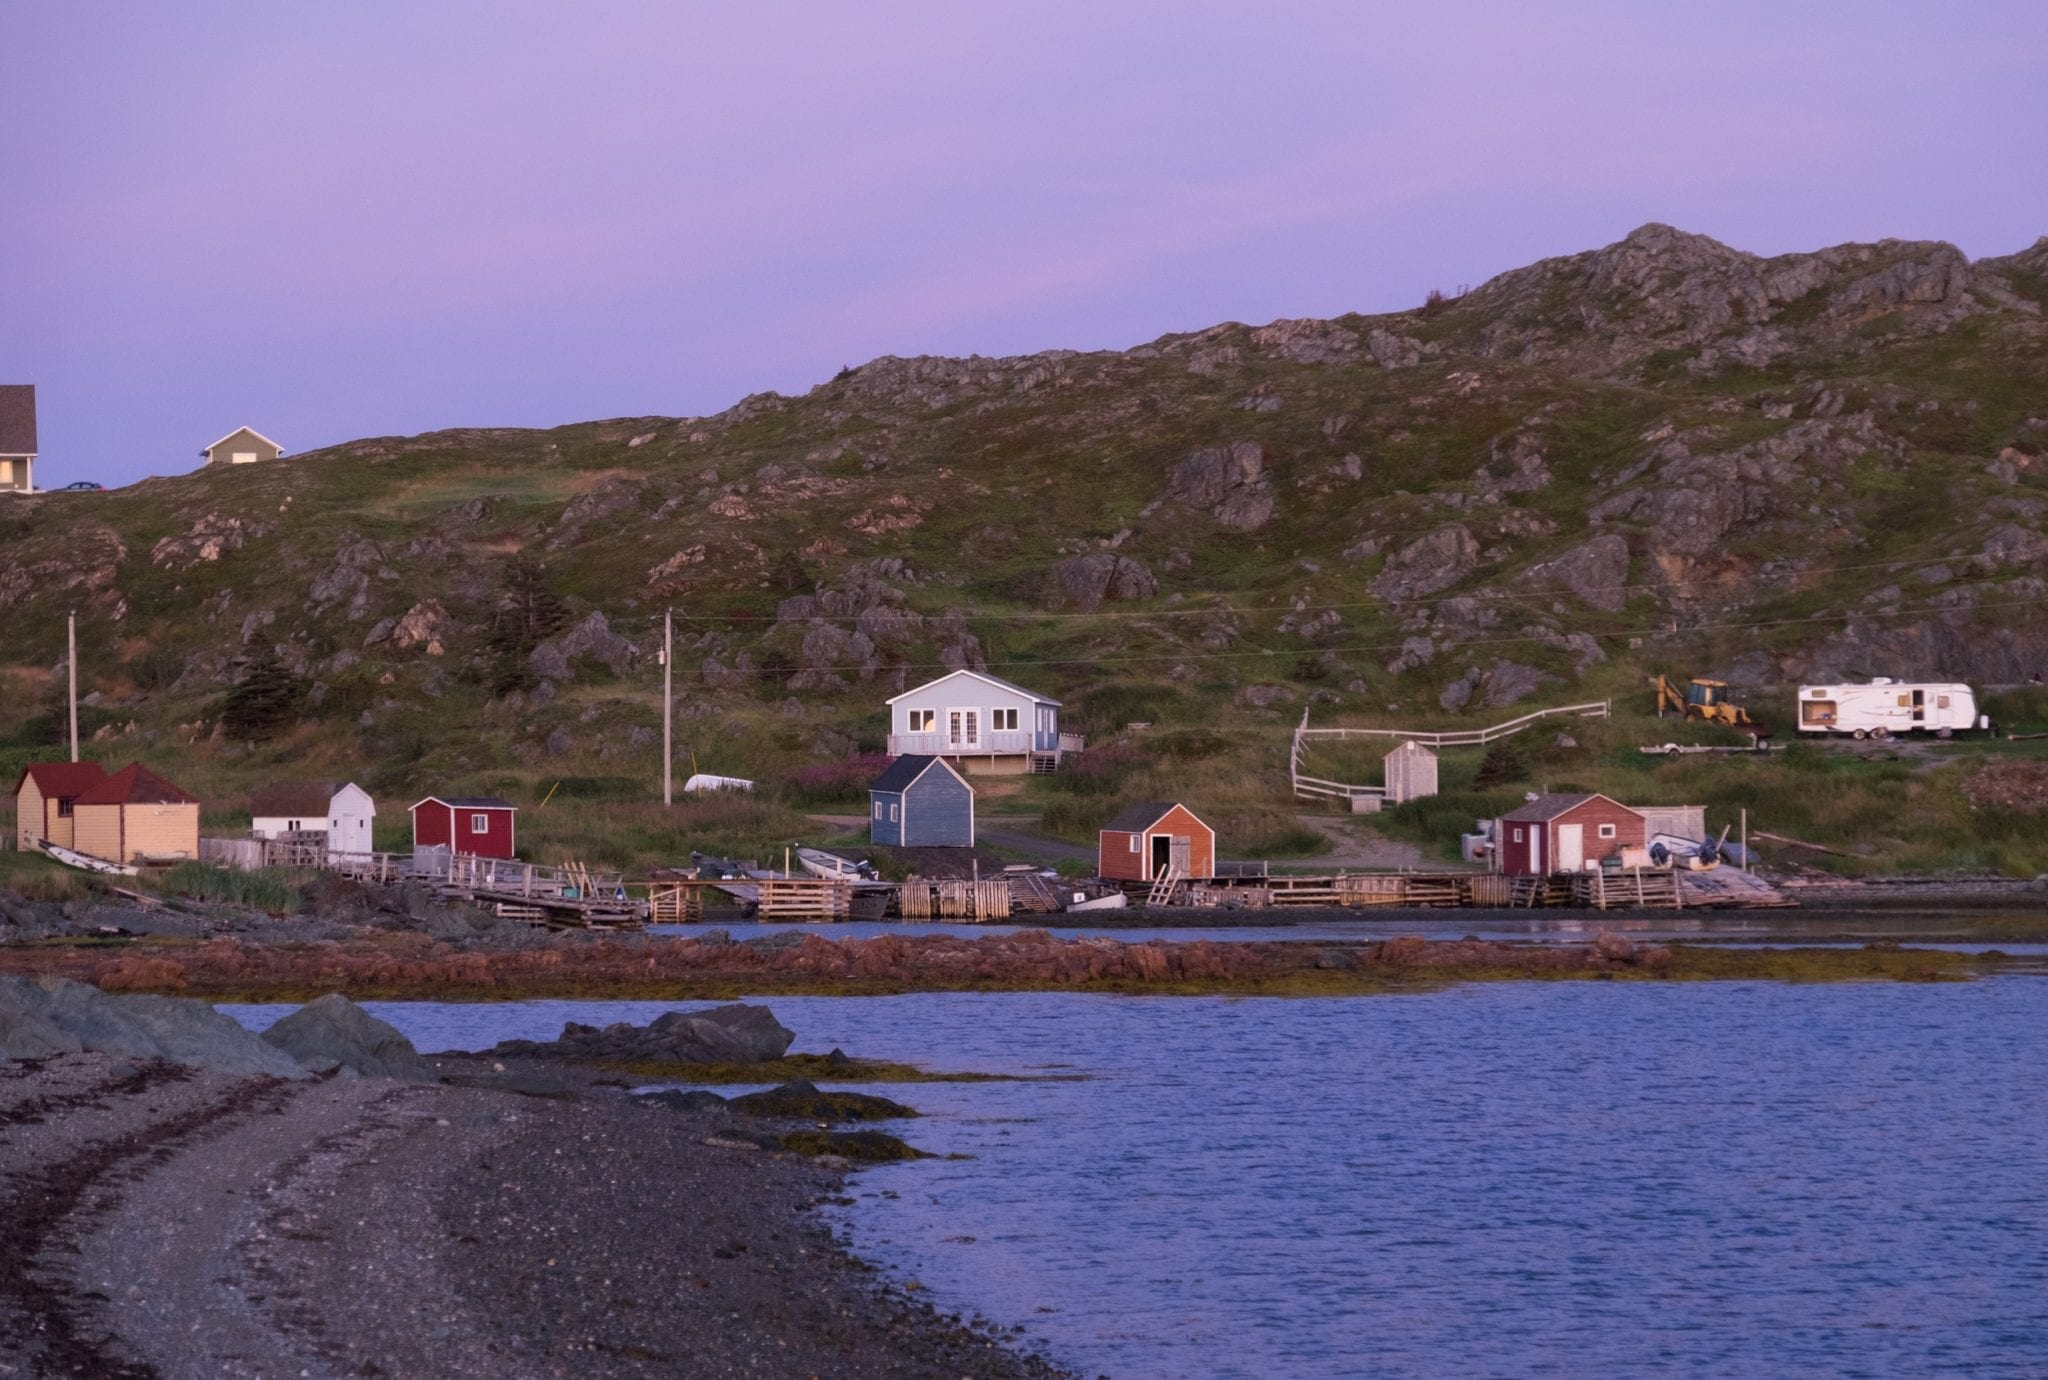 Cottages on the beach in Twillingate at dusk, the sky light purple, the cliffs bright green.